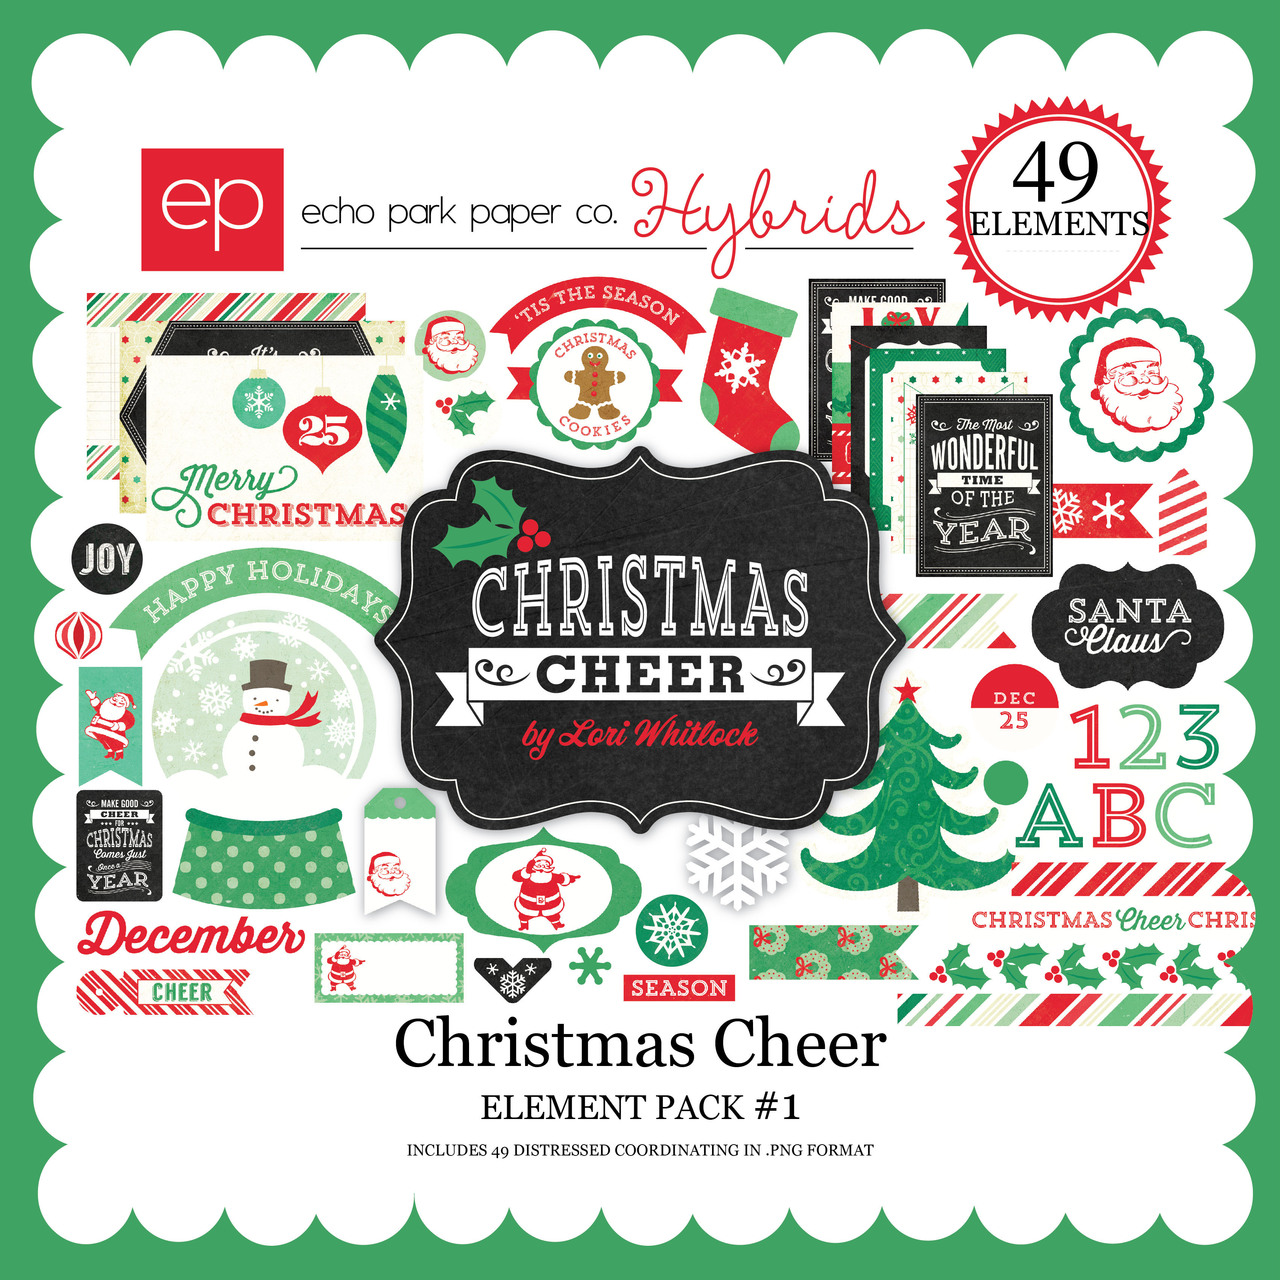 EP Christmas Cheer Element Pack #2